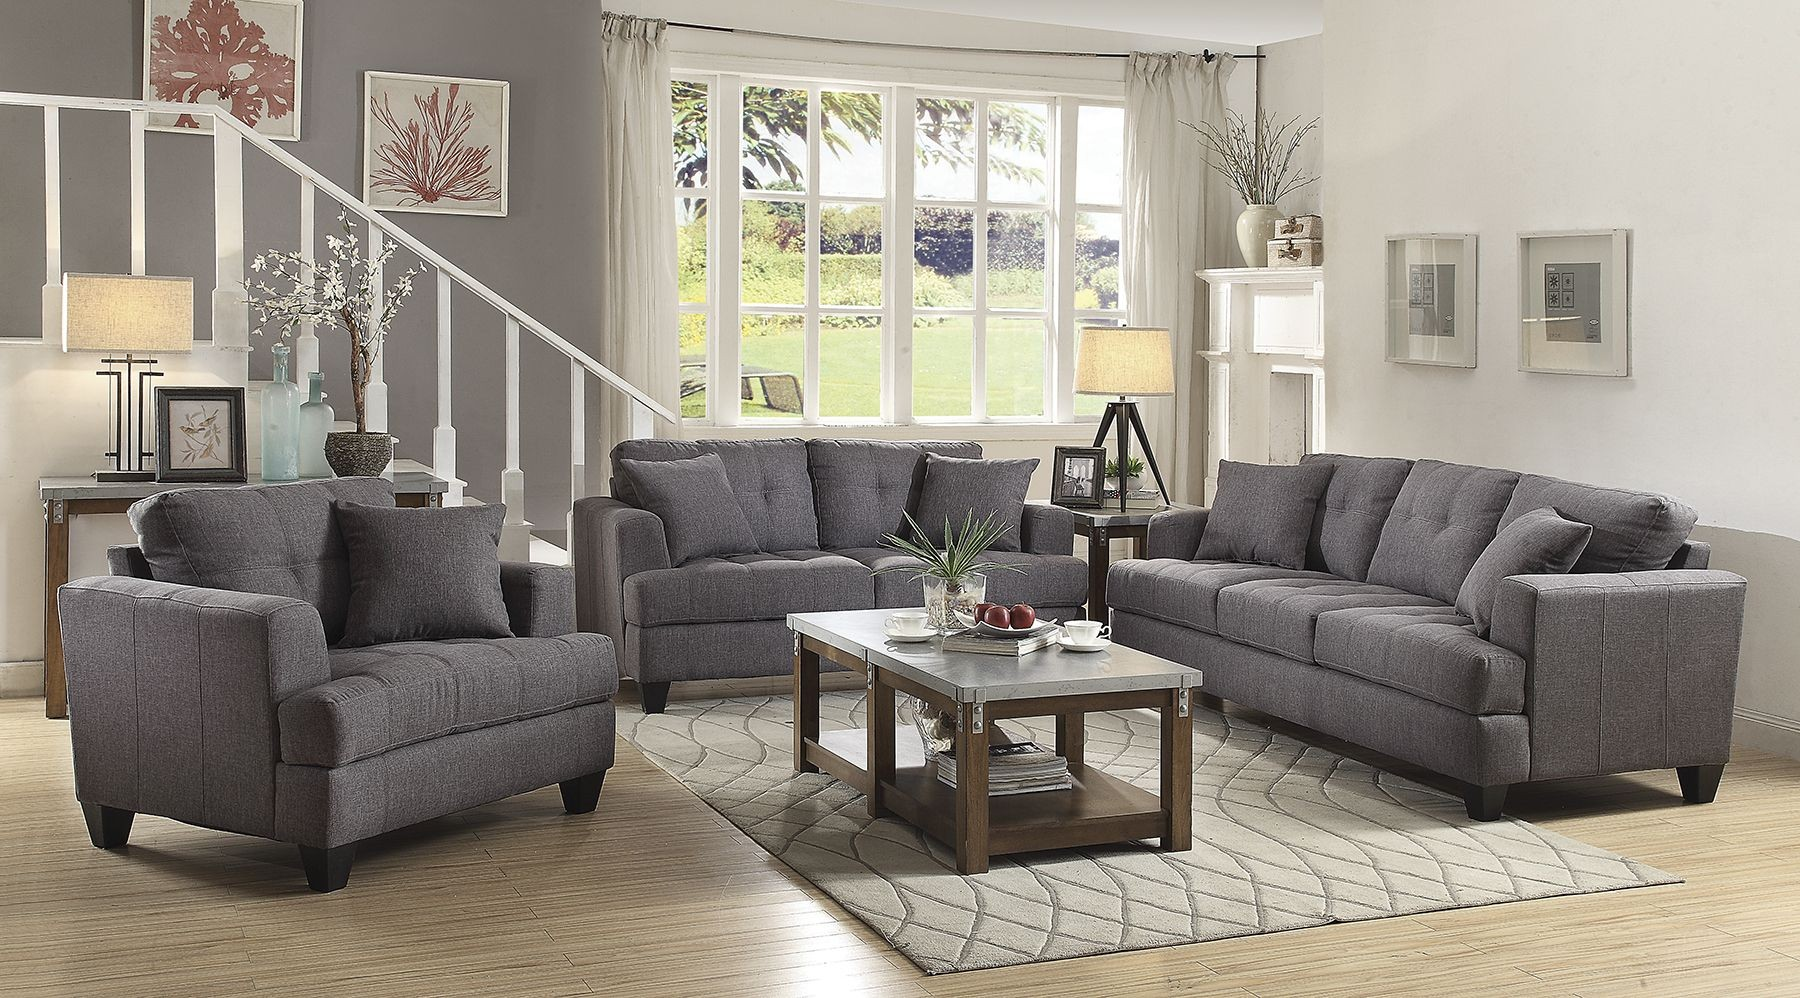 Grey Living Room Chairs Samuel Gray Living Room Set From Coaster Coleman Furniture